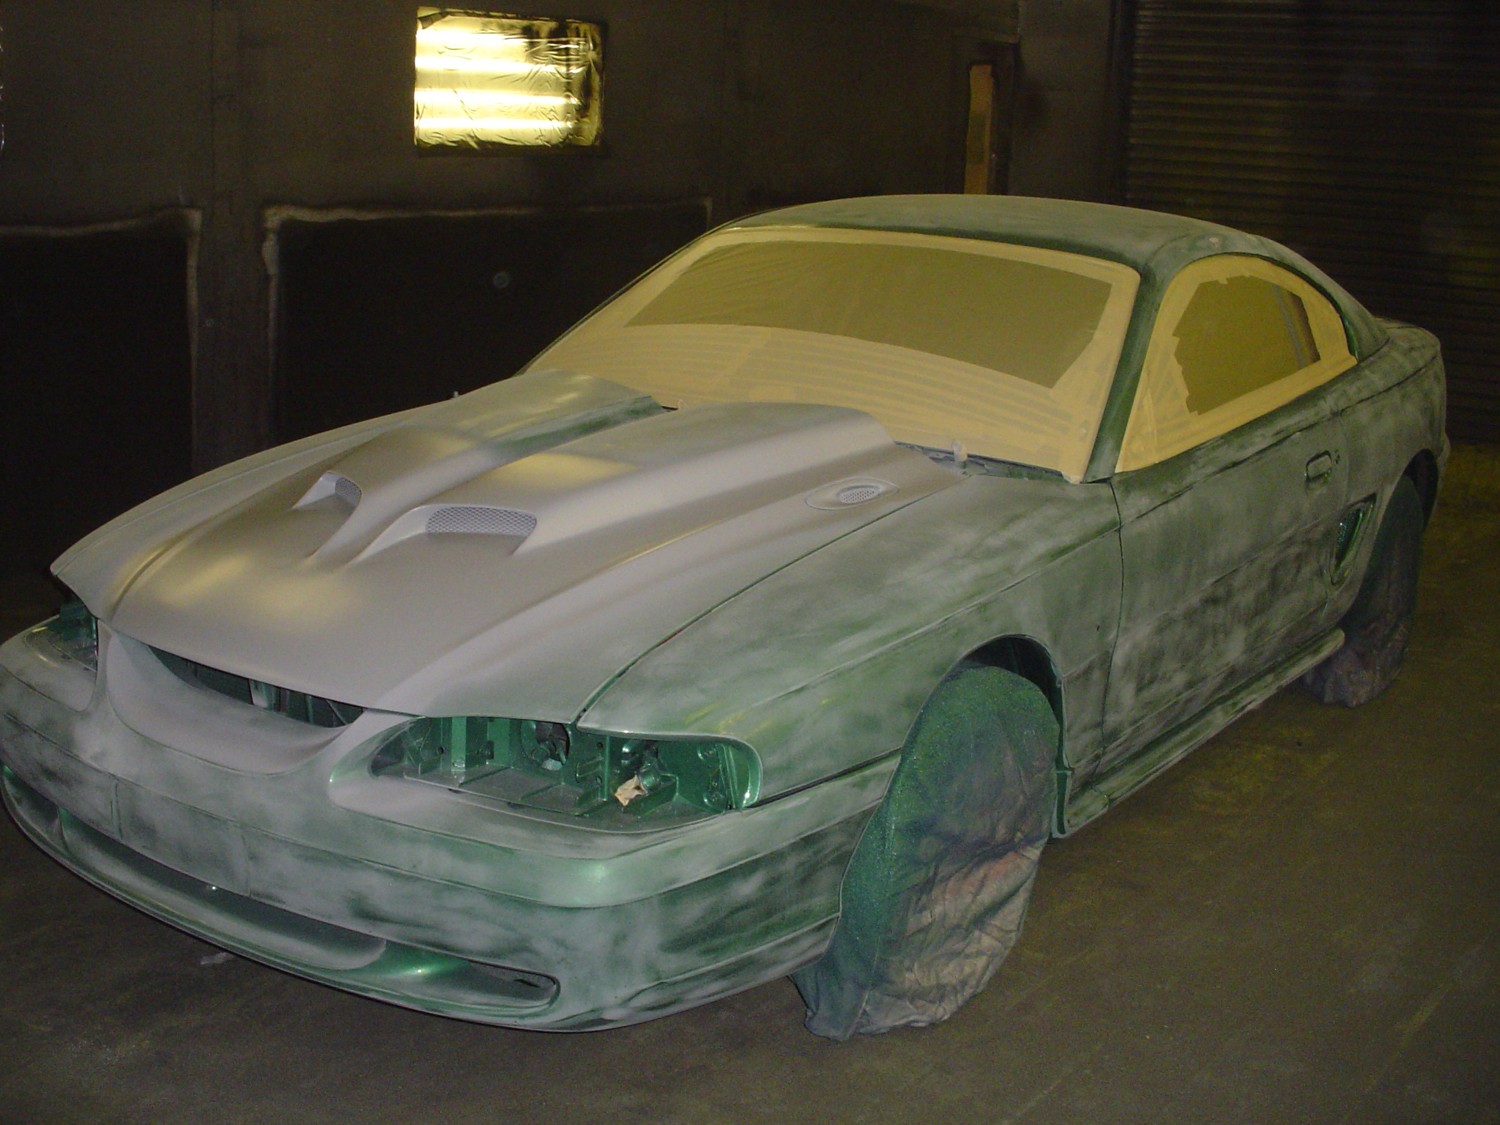 Jessie's Mustang